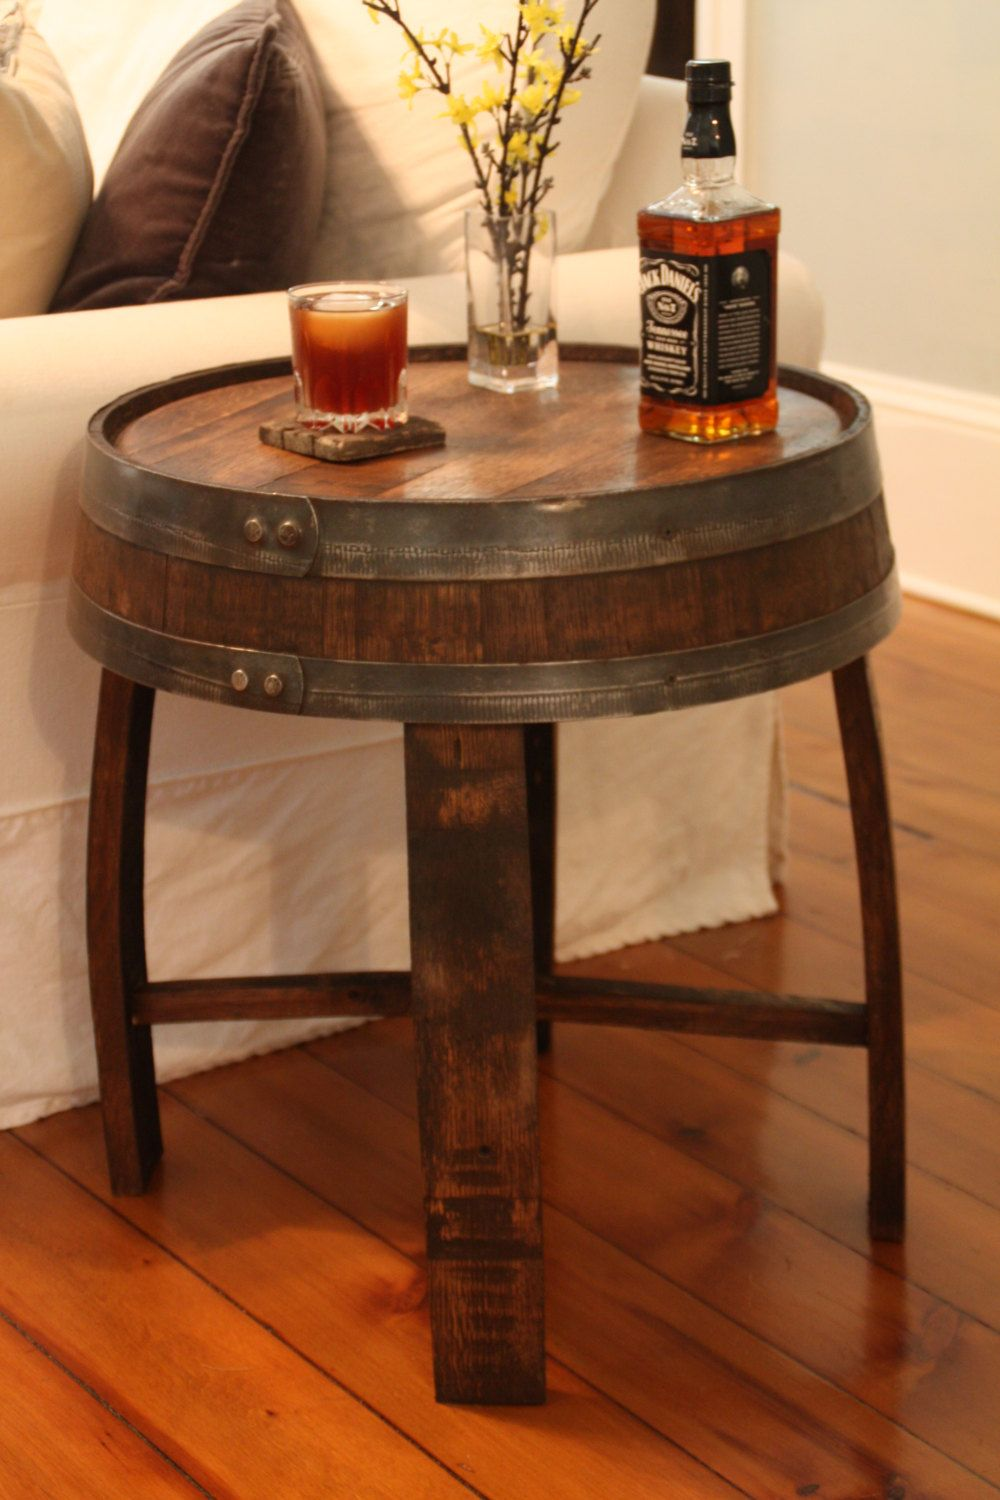 Attractive Handcrafted Oak Whiskey Barrel End Table By BarnWorksDesigns On Etsy